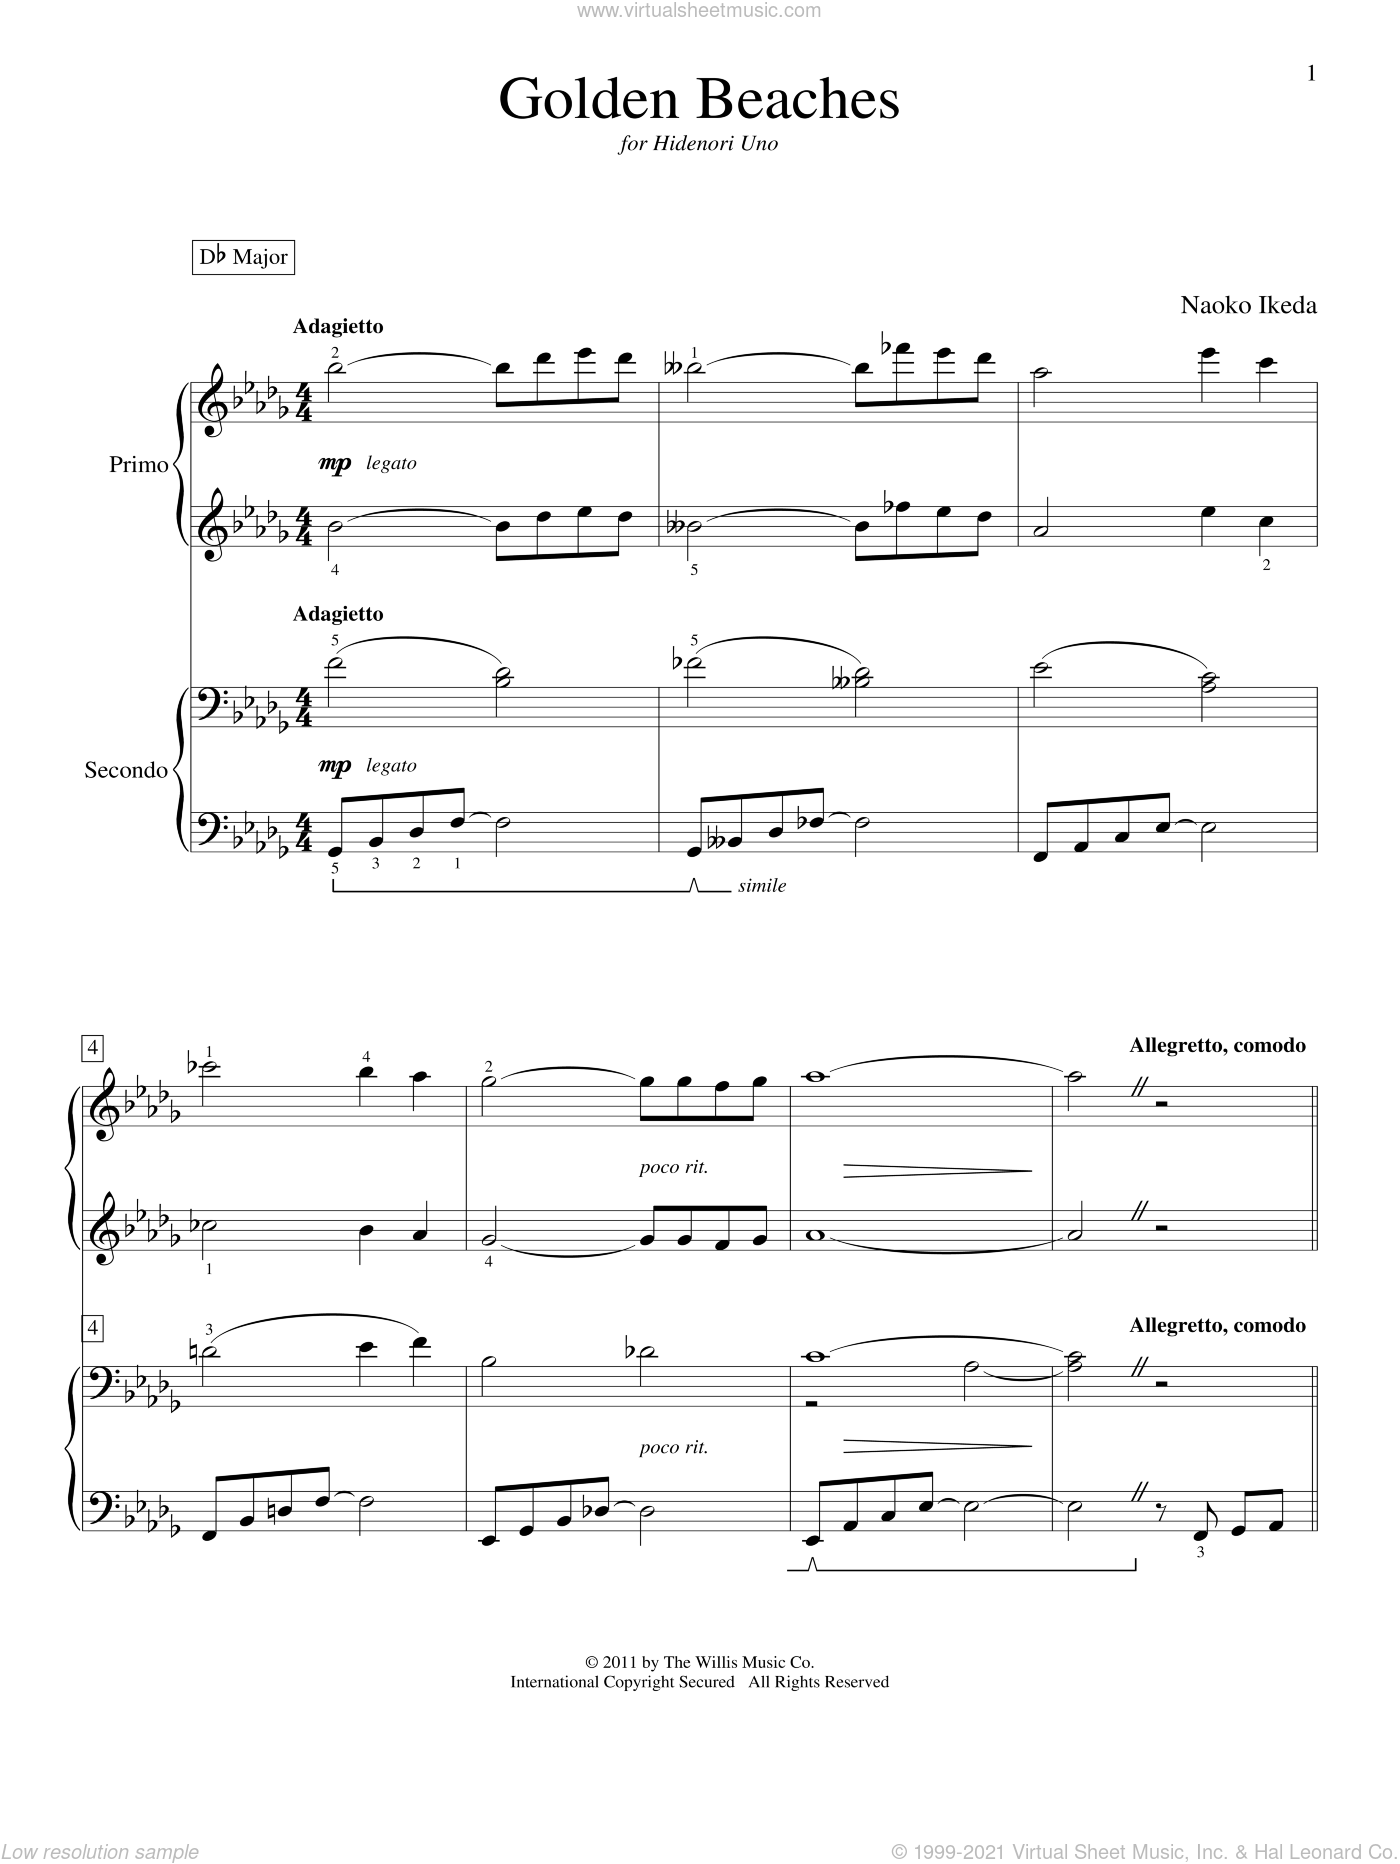 Golden Beaches sheet music for piano four hands by Naoko Ikeda, intermediate skill level